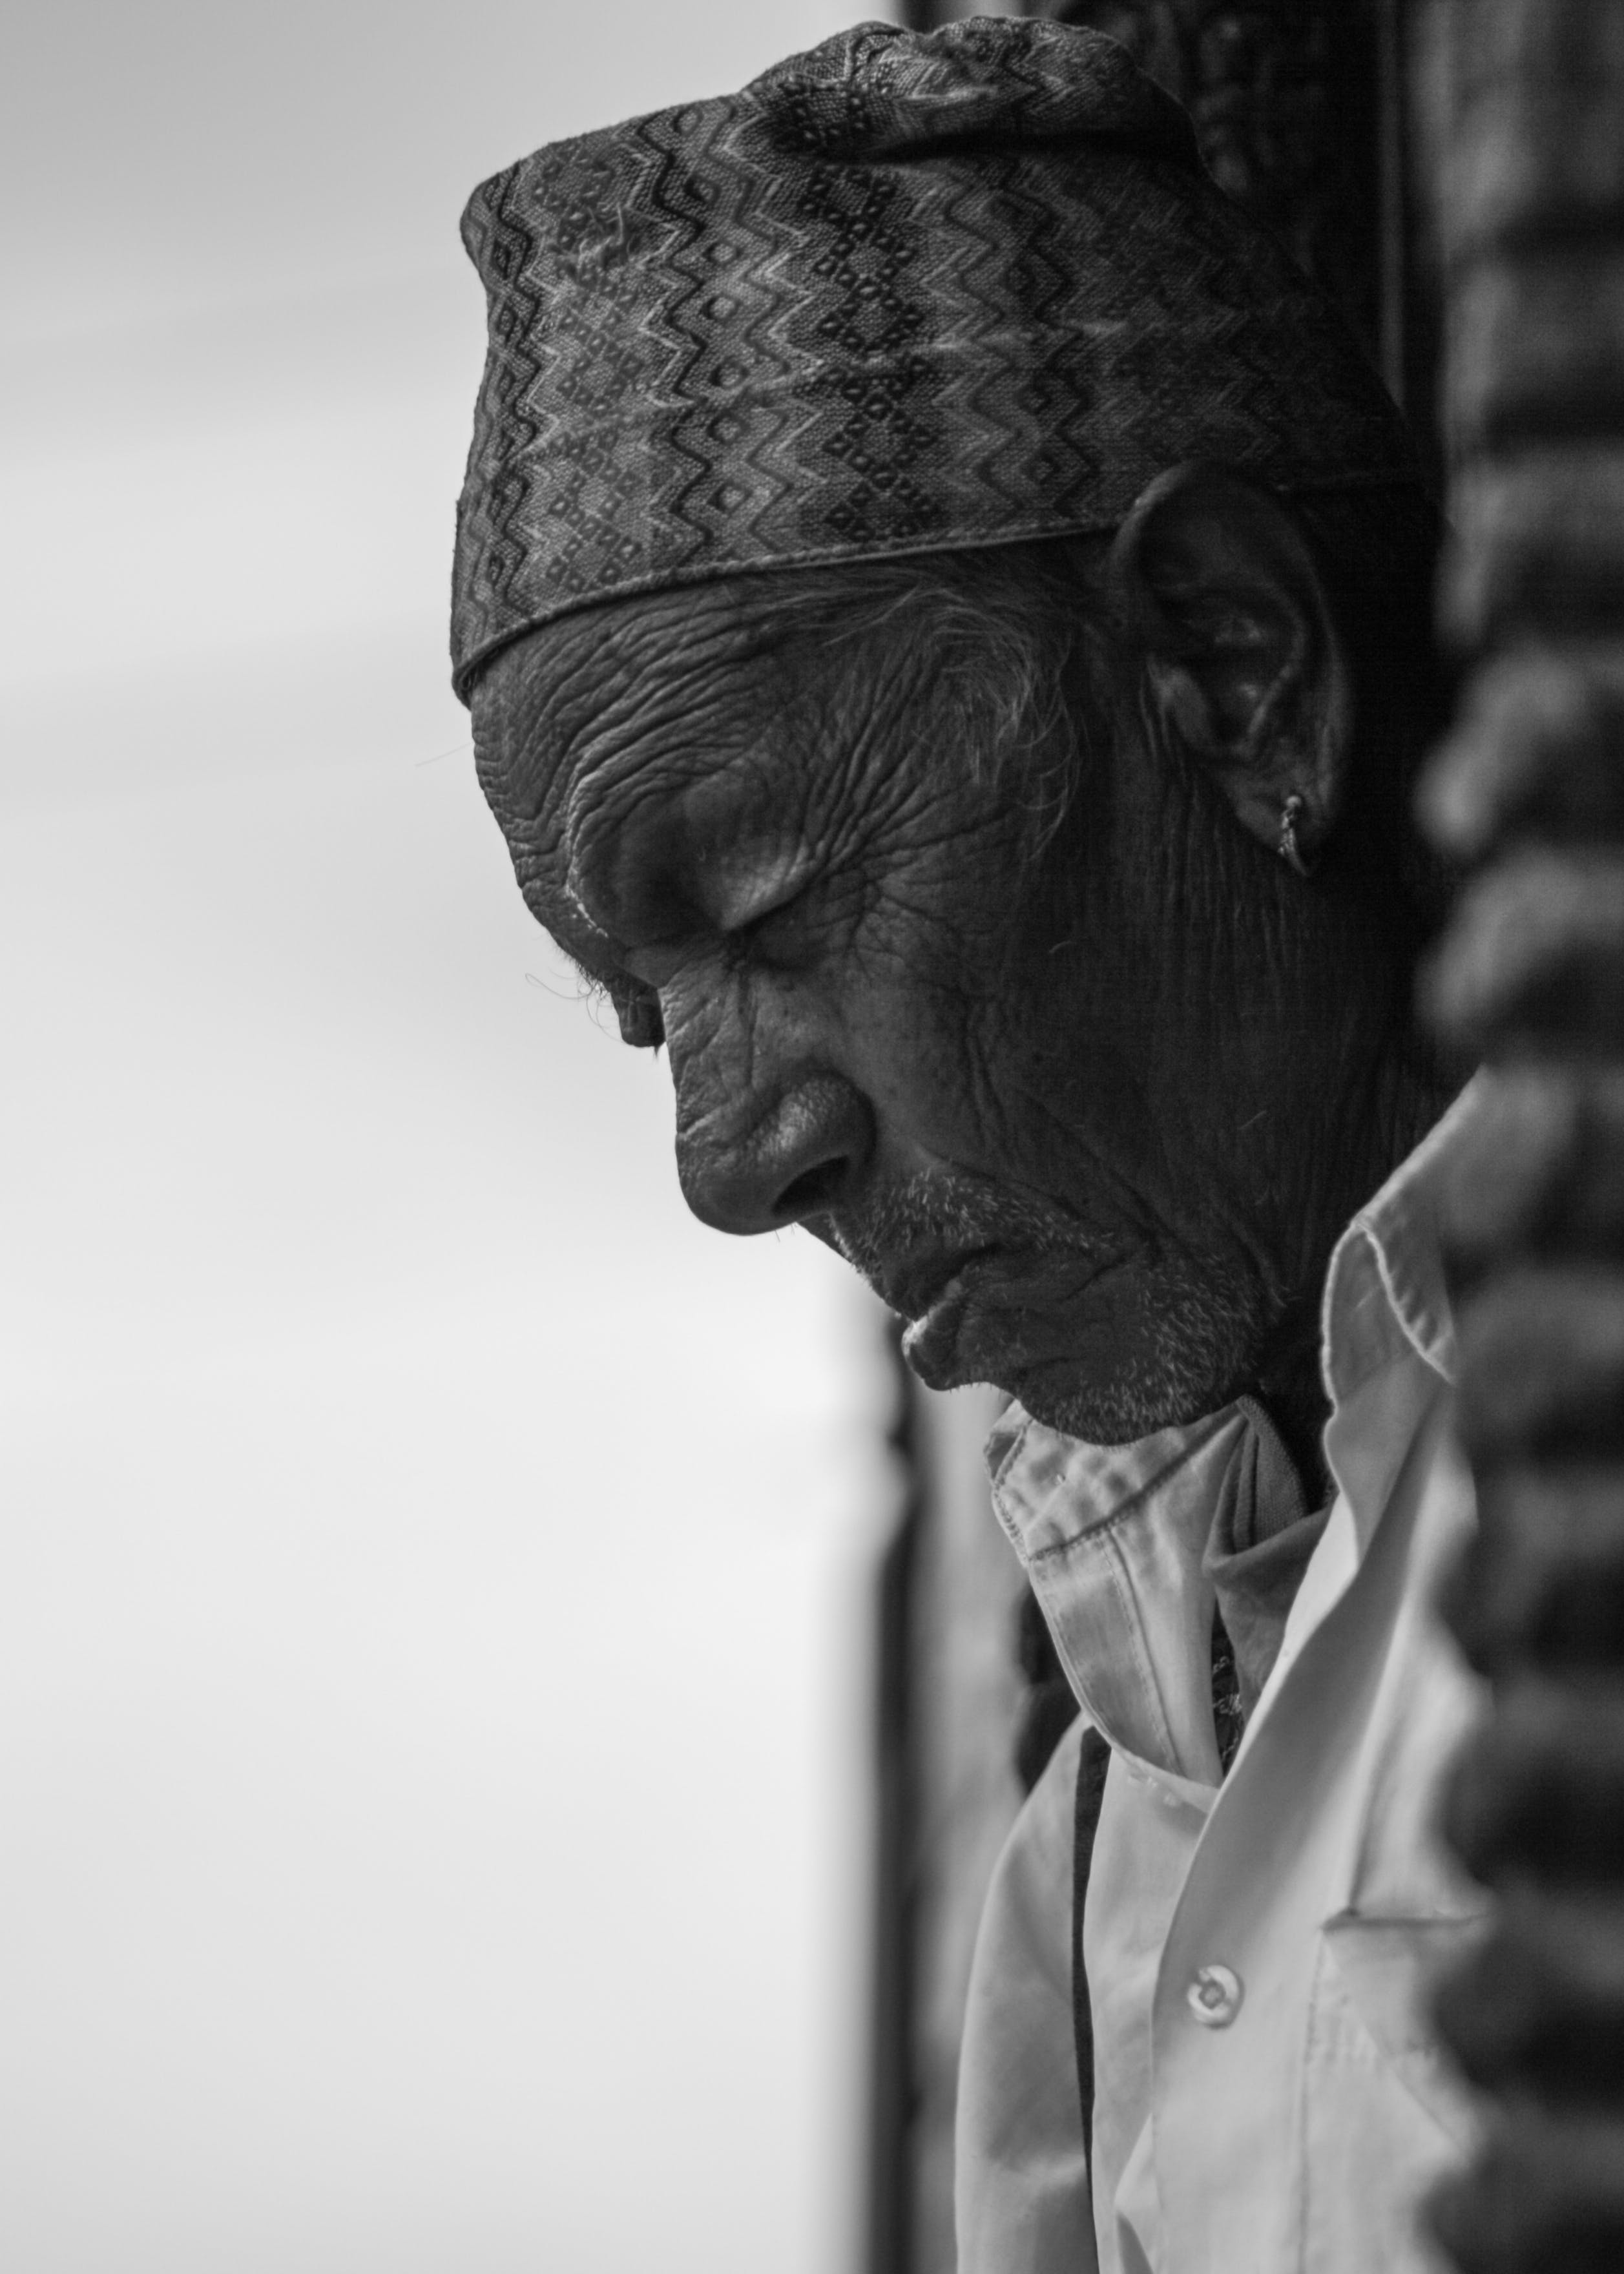 Grayscale Photo of a Man With Headdress